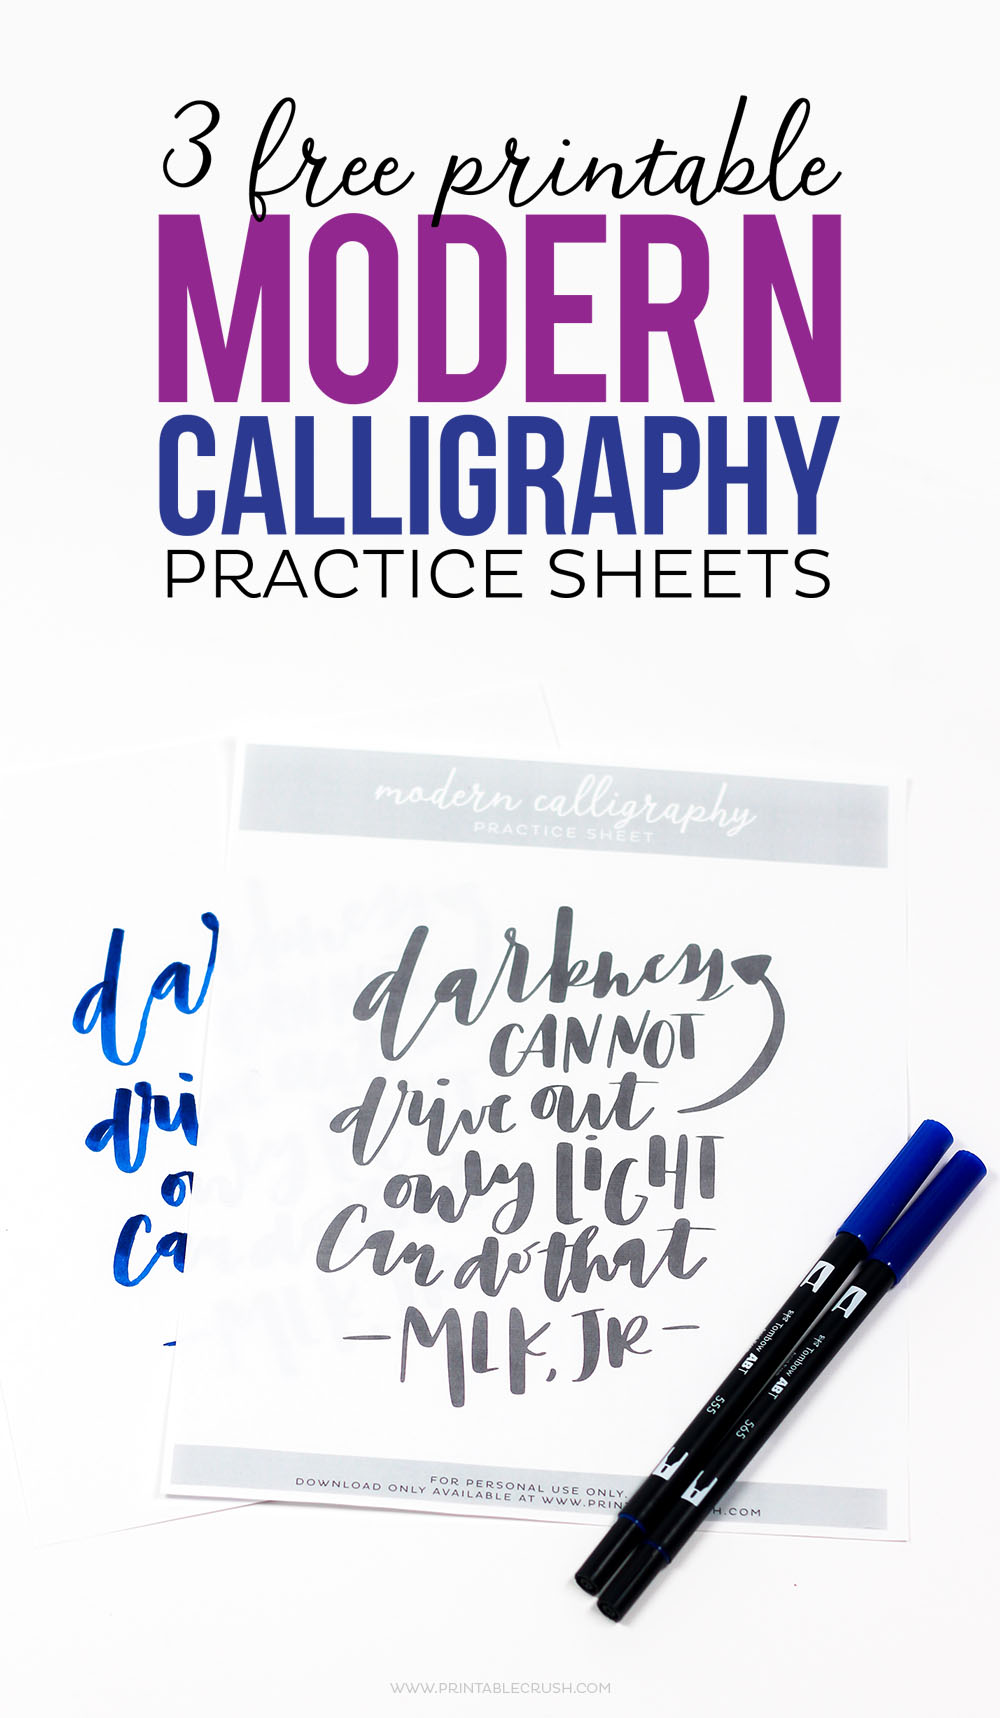 Fantastic practice sheet photos worksheet mathematics